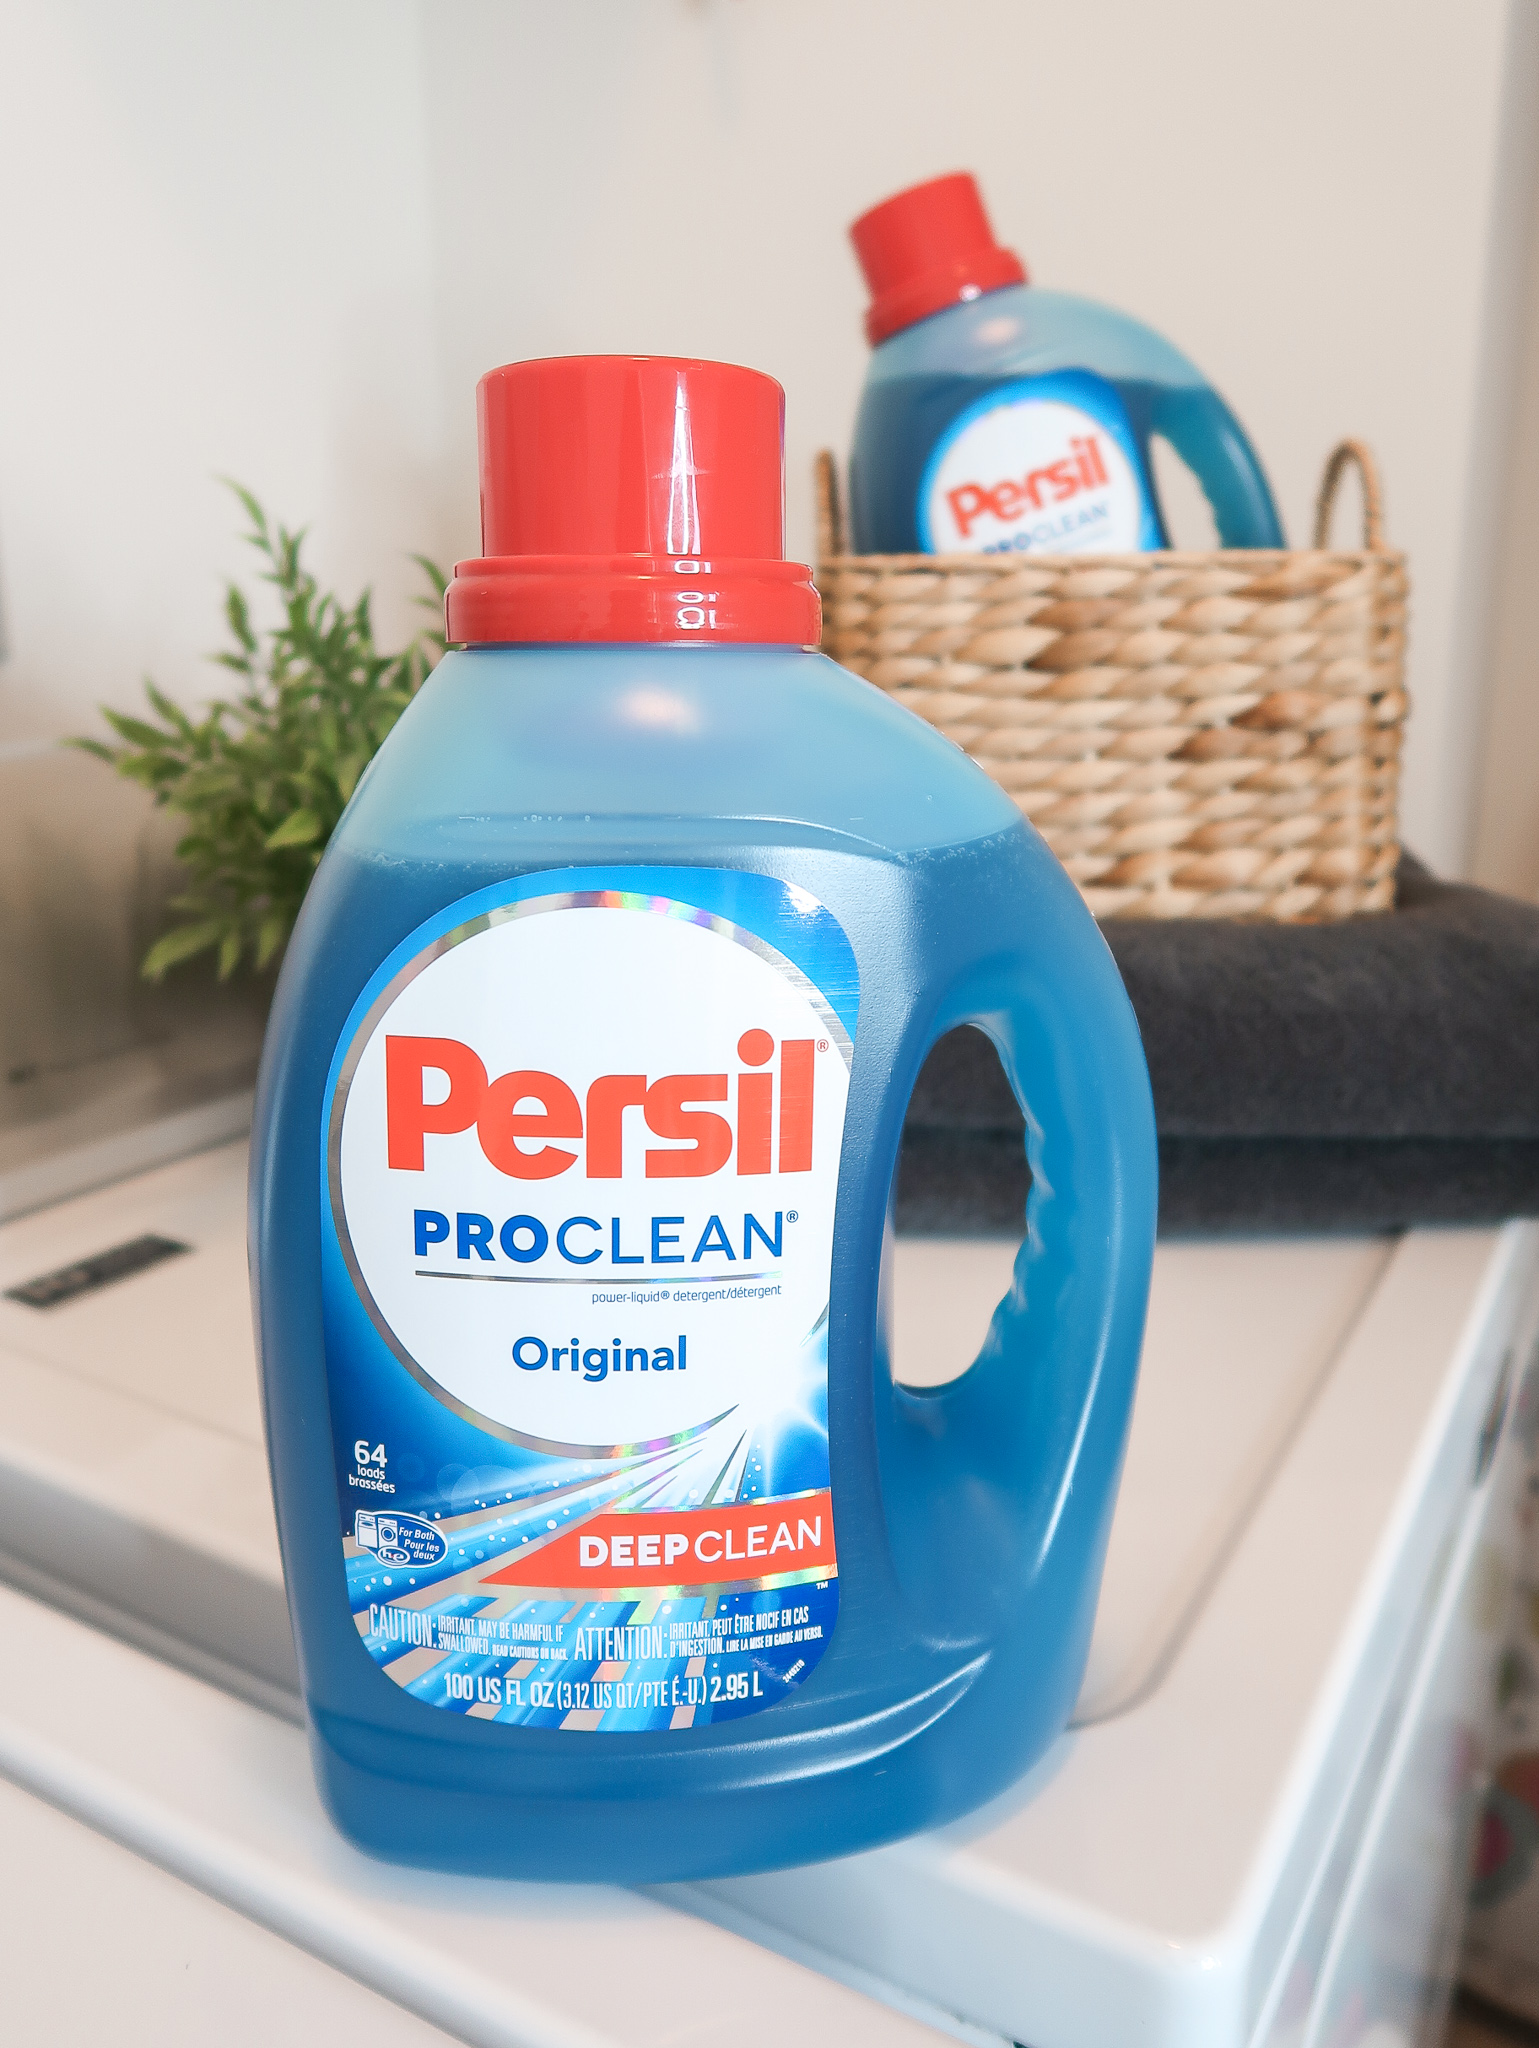 A-Pet-parents-guide-to-tough-stains-persil-laundry-detergent-8.jpg